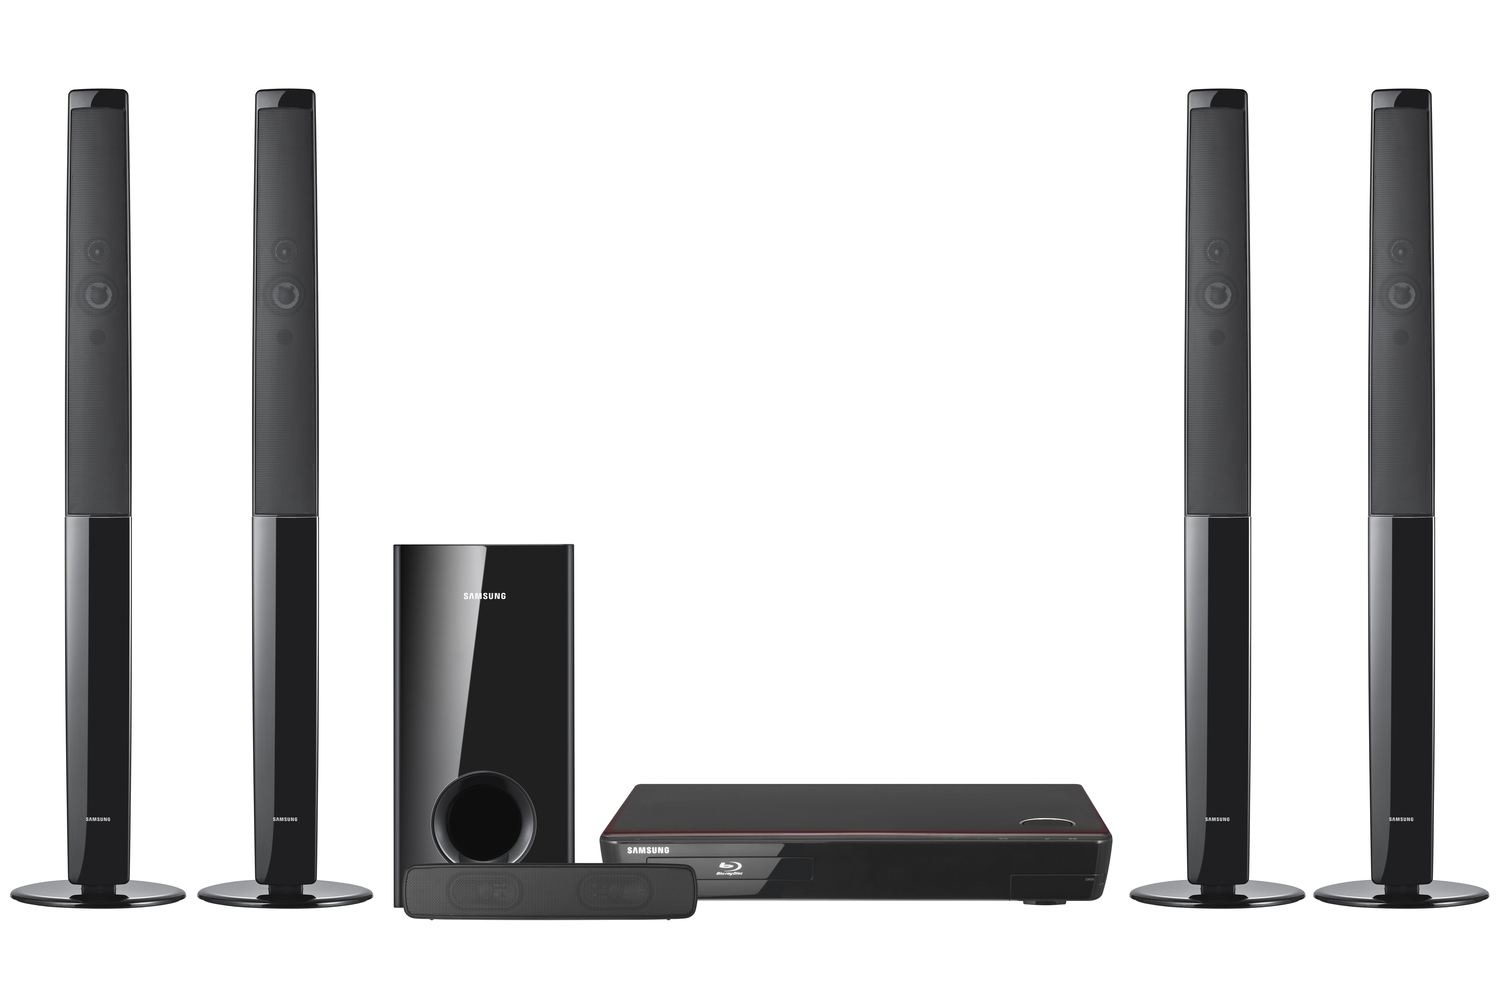 Samsung Ht Bd1255 Review This All In One Blu Ray Home Theatre